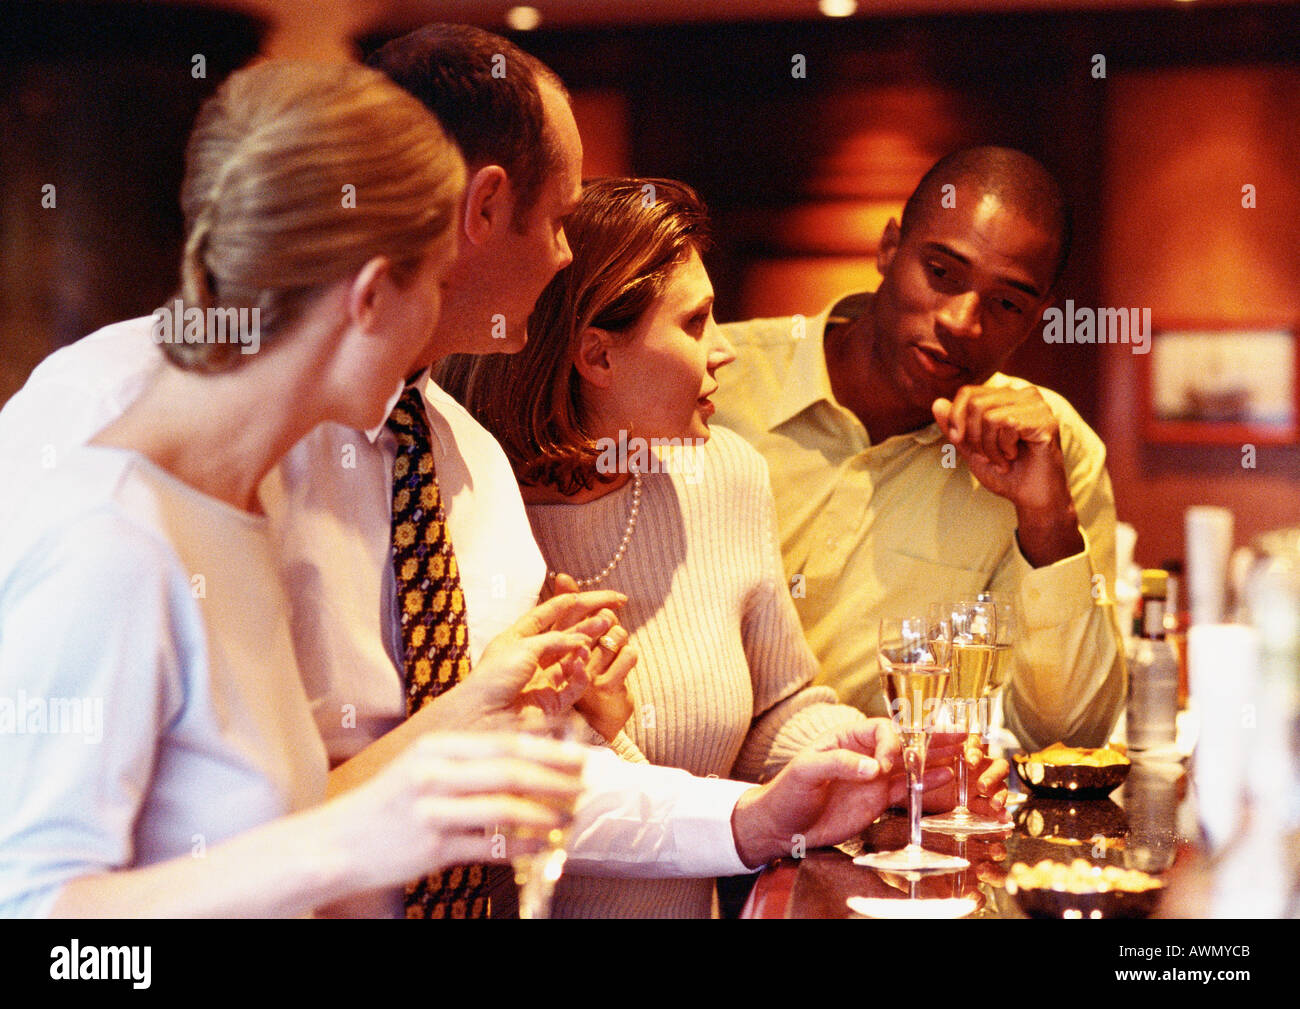 Group of business people socializing at bar. - Stock Image